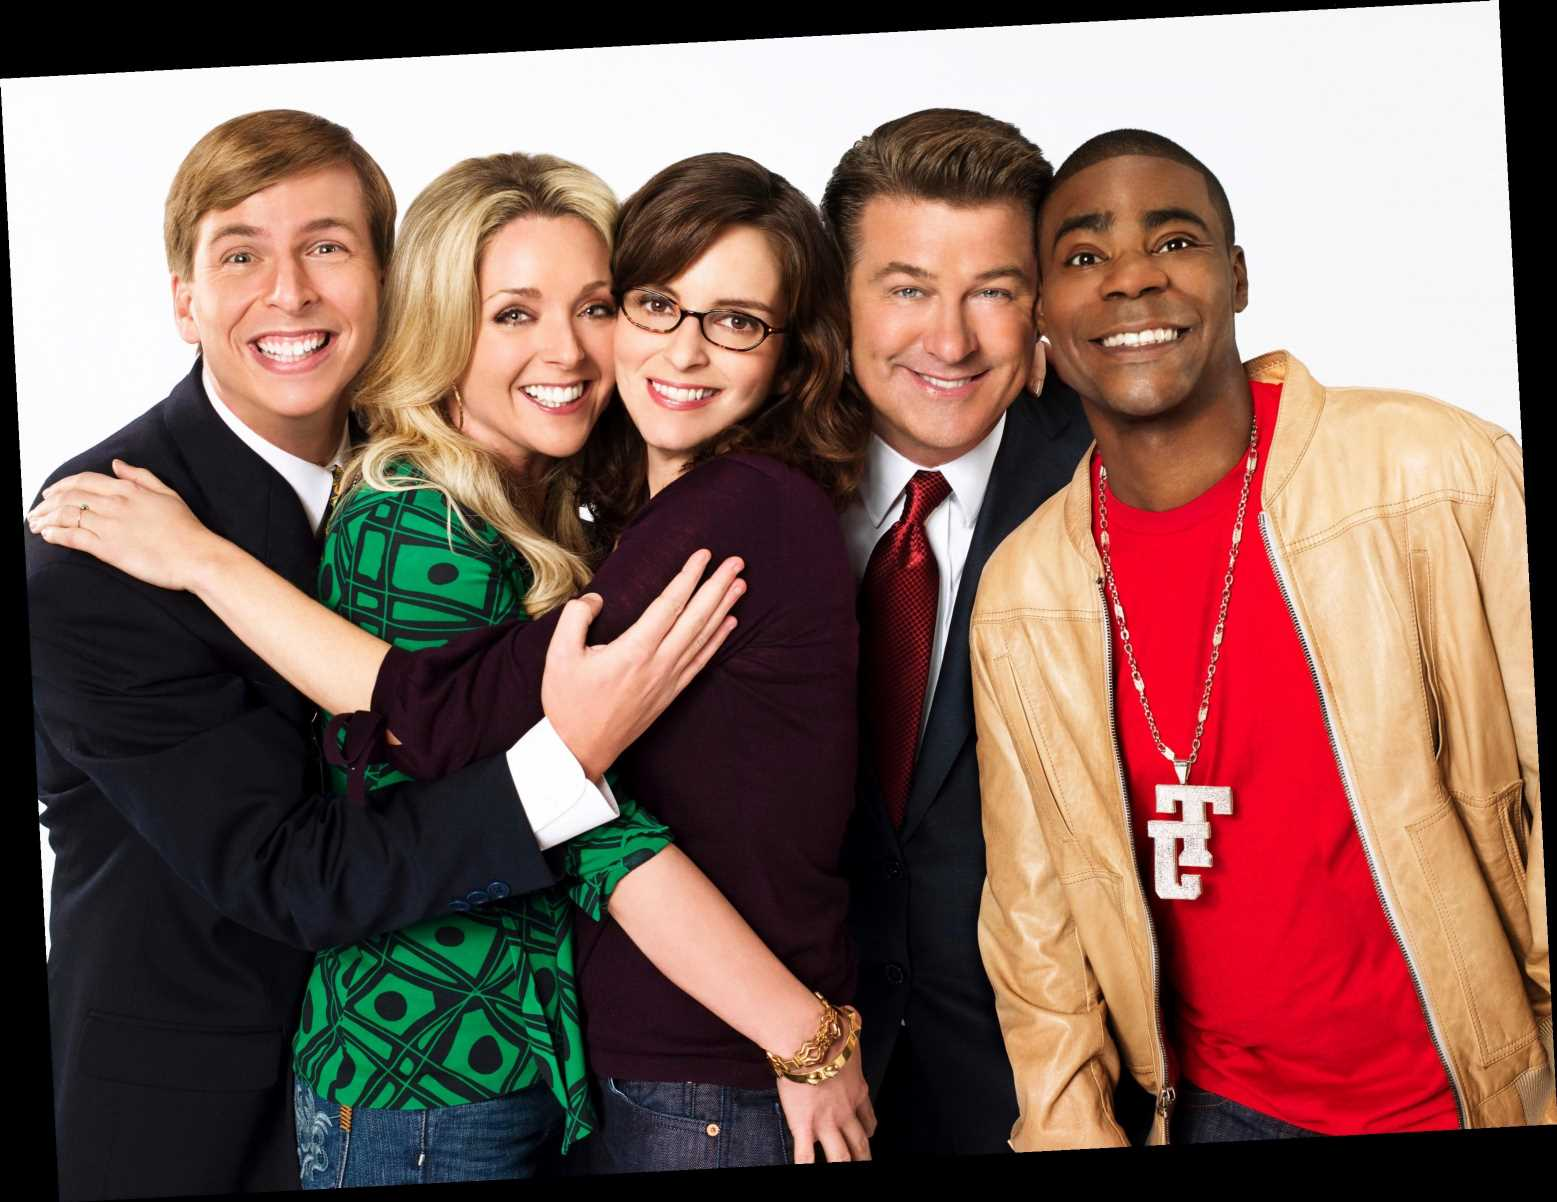 Alec Baldwin and Tina Fey to reunite with 30 Rock cast for one-hour special – The Sun